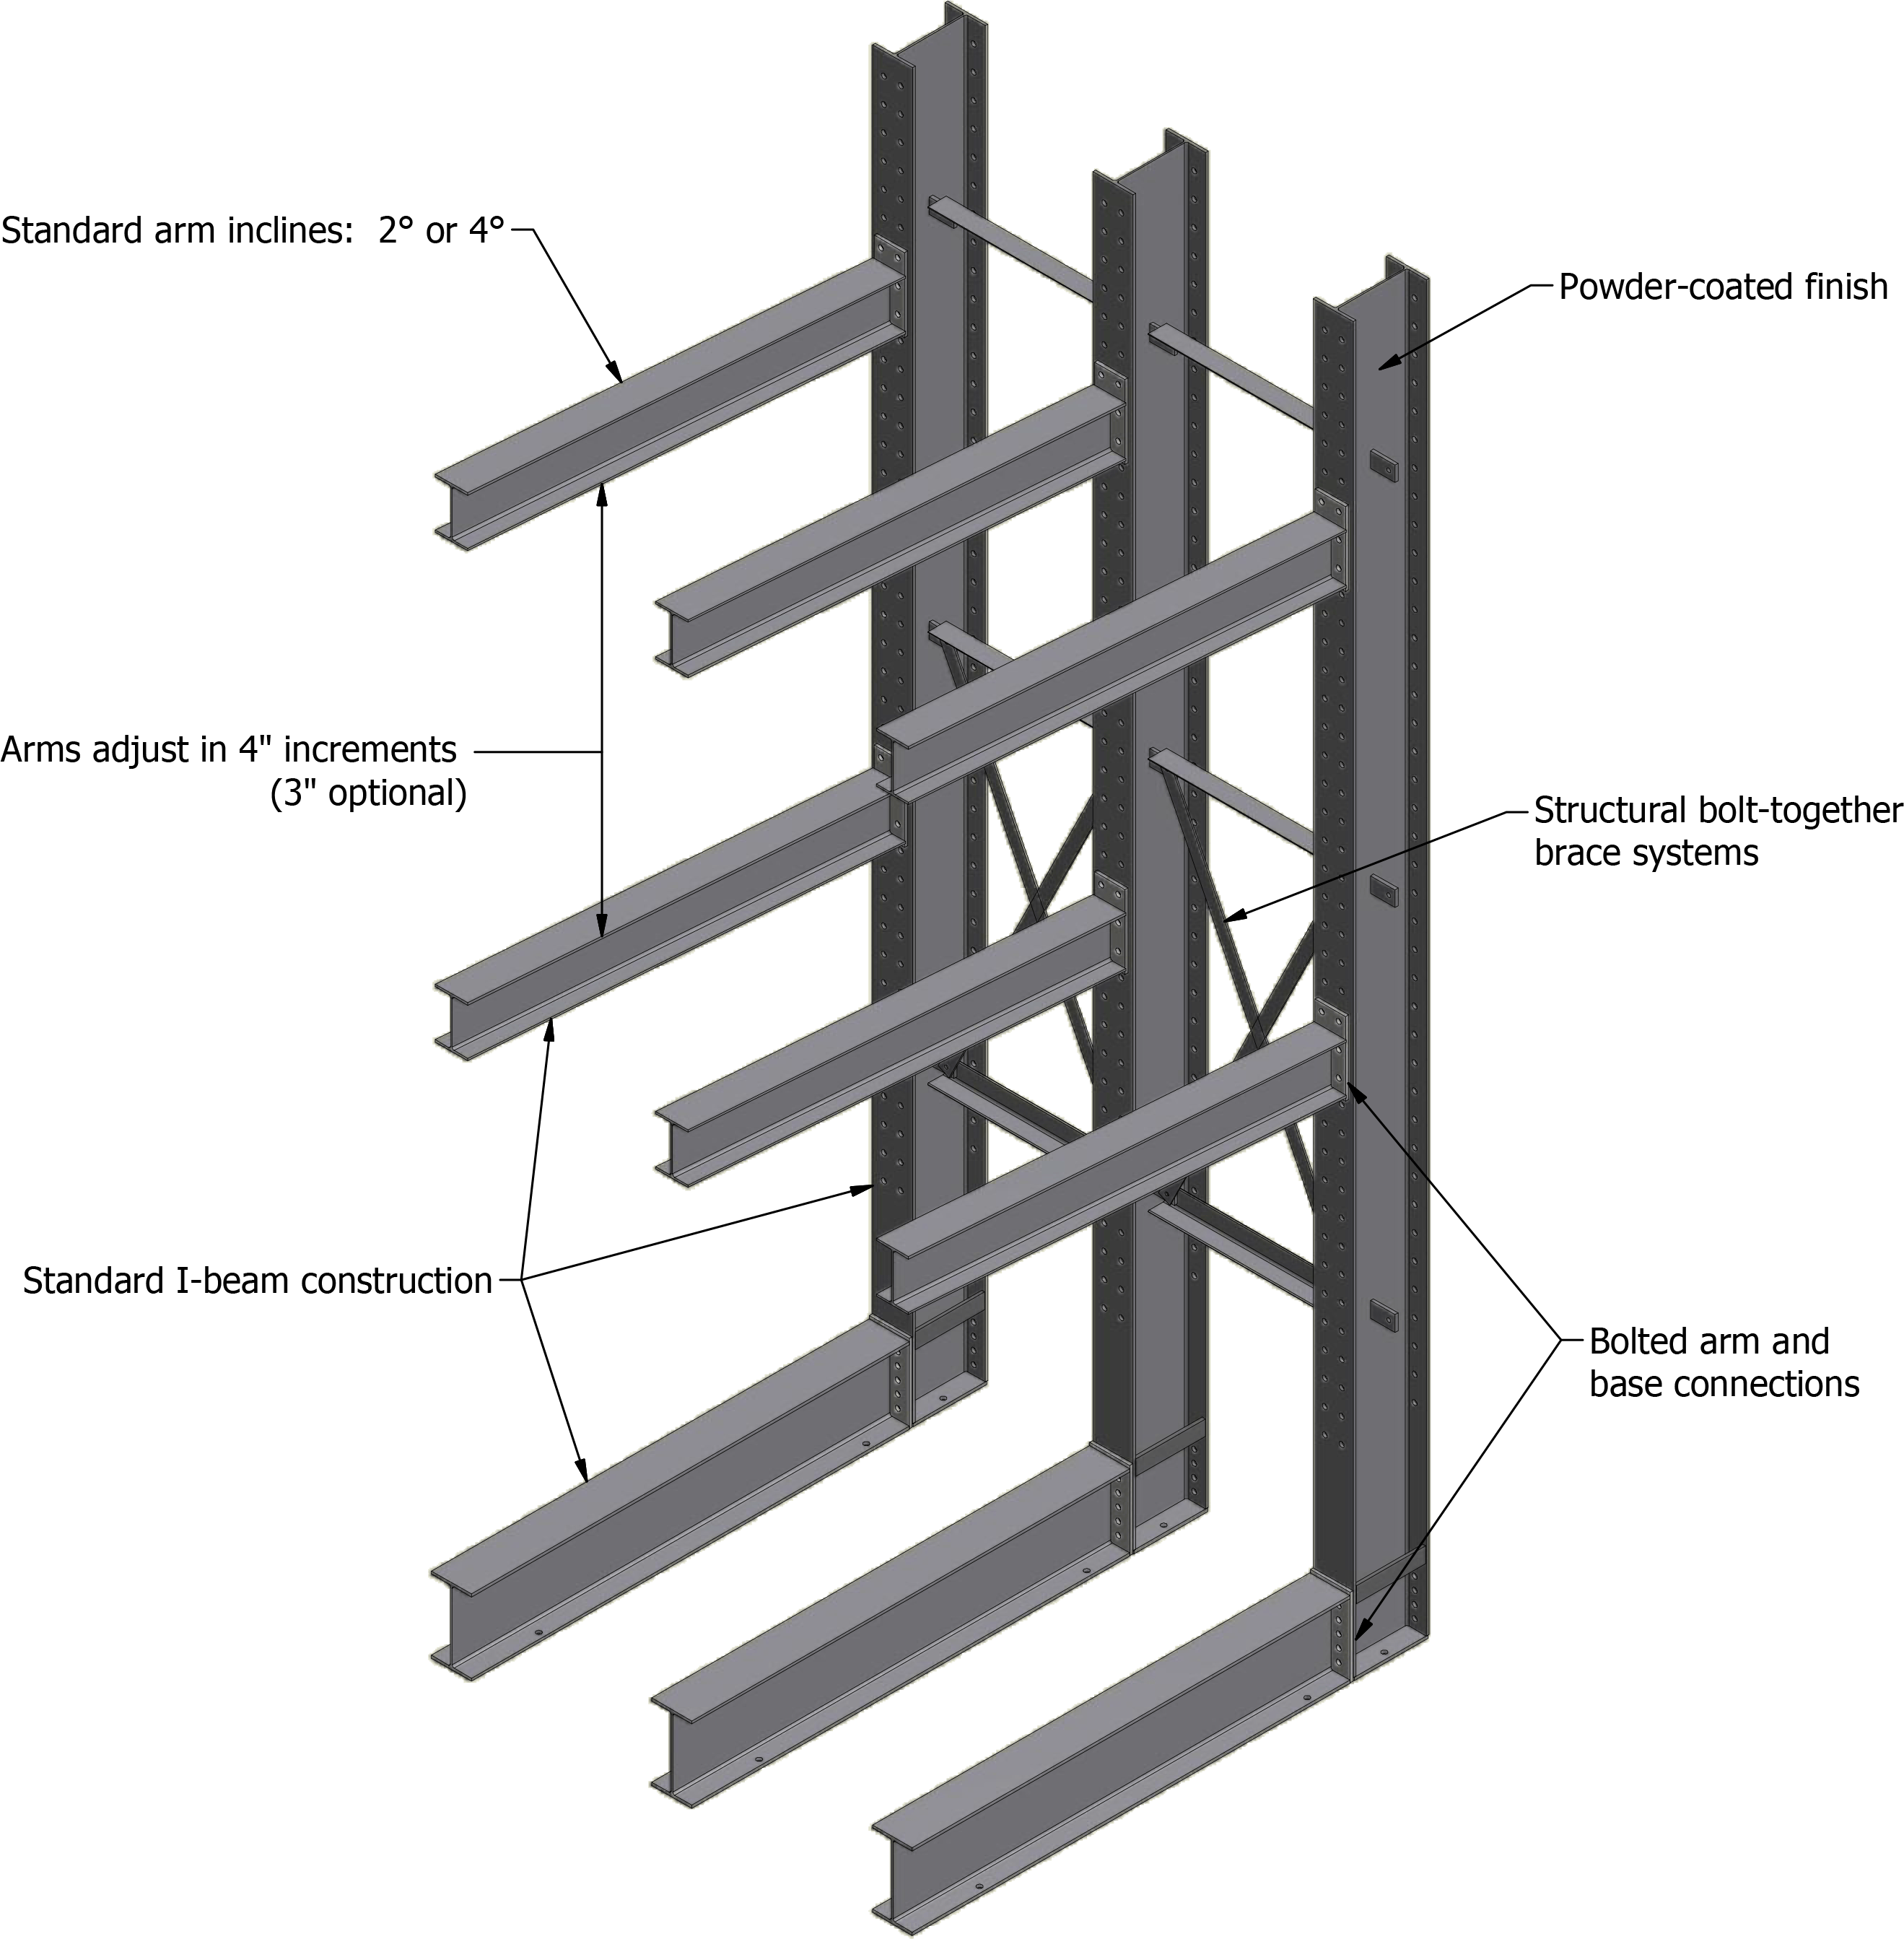 picture free download Dexco structural i beam. Drawing storage construction